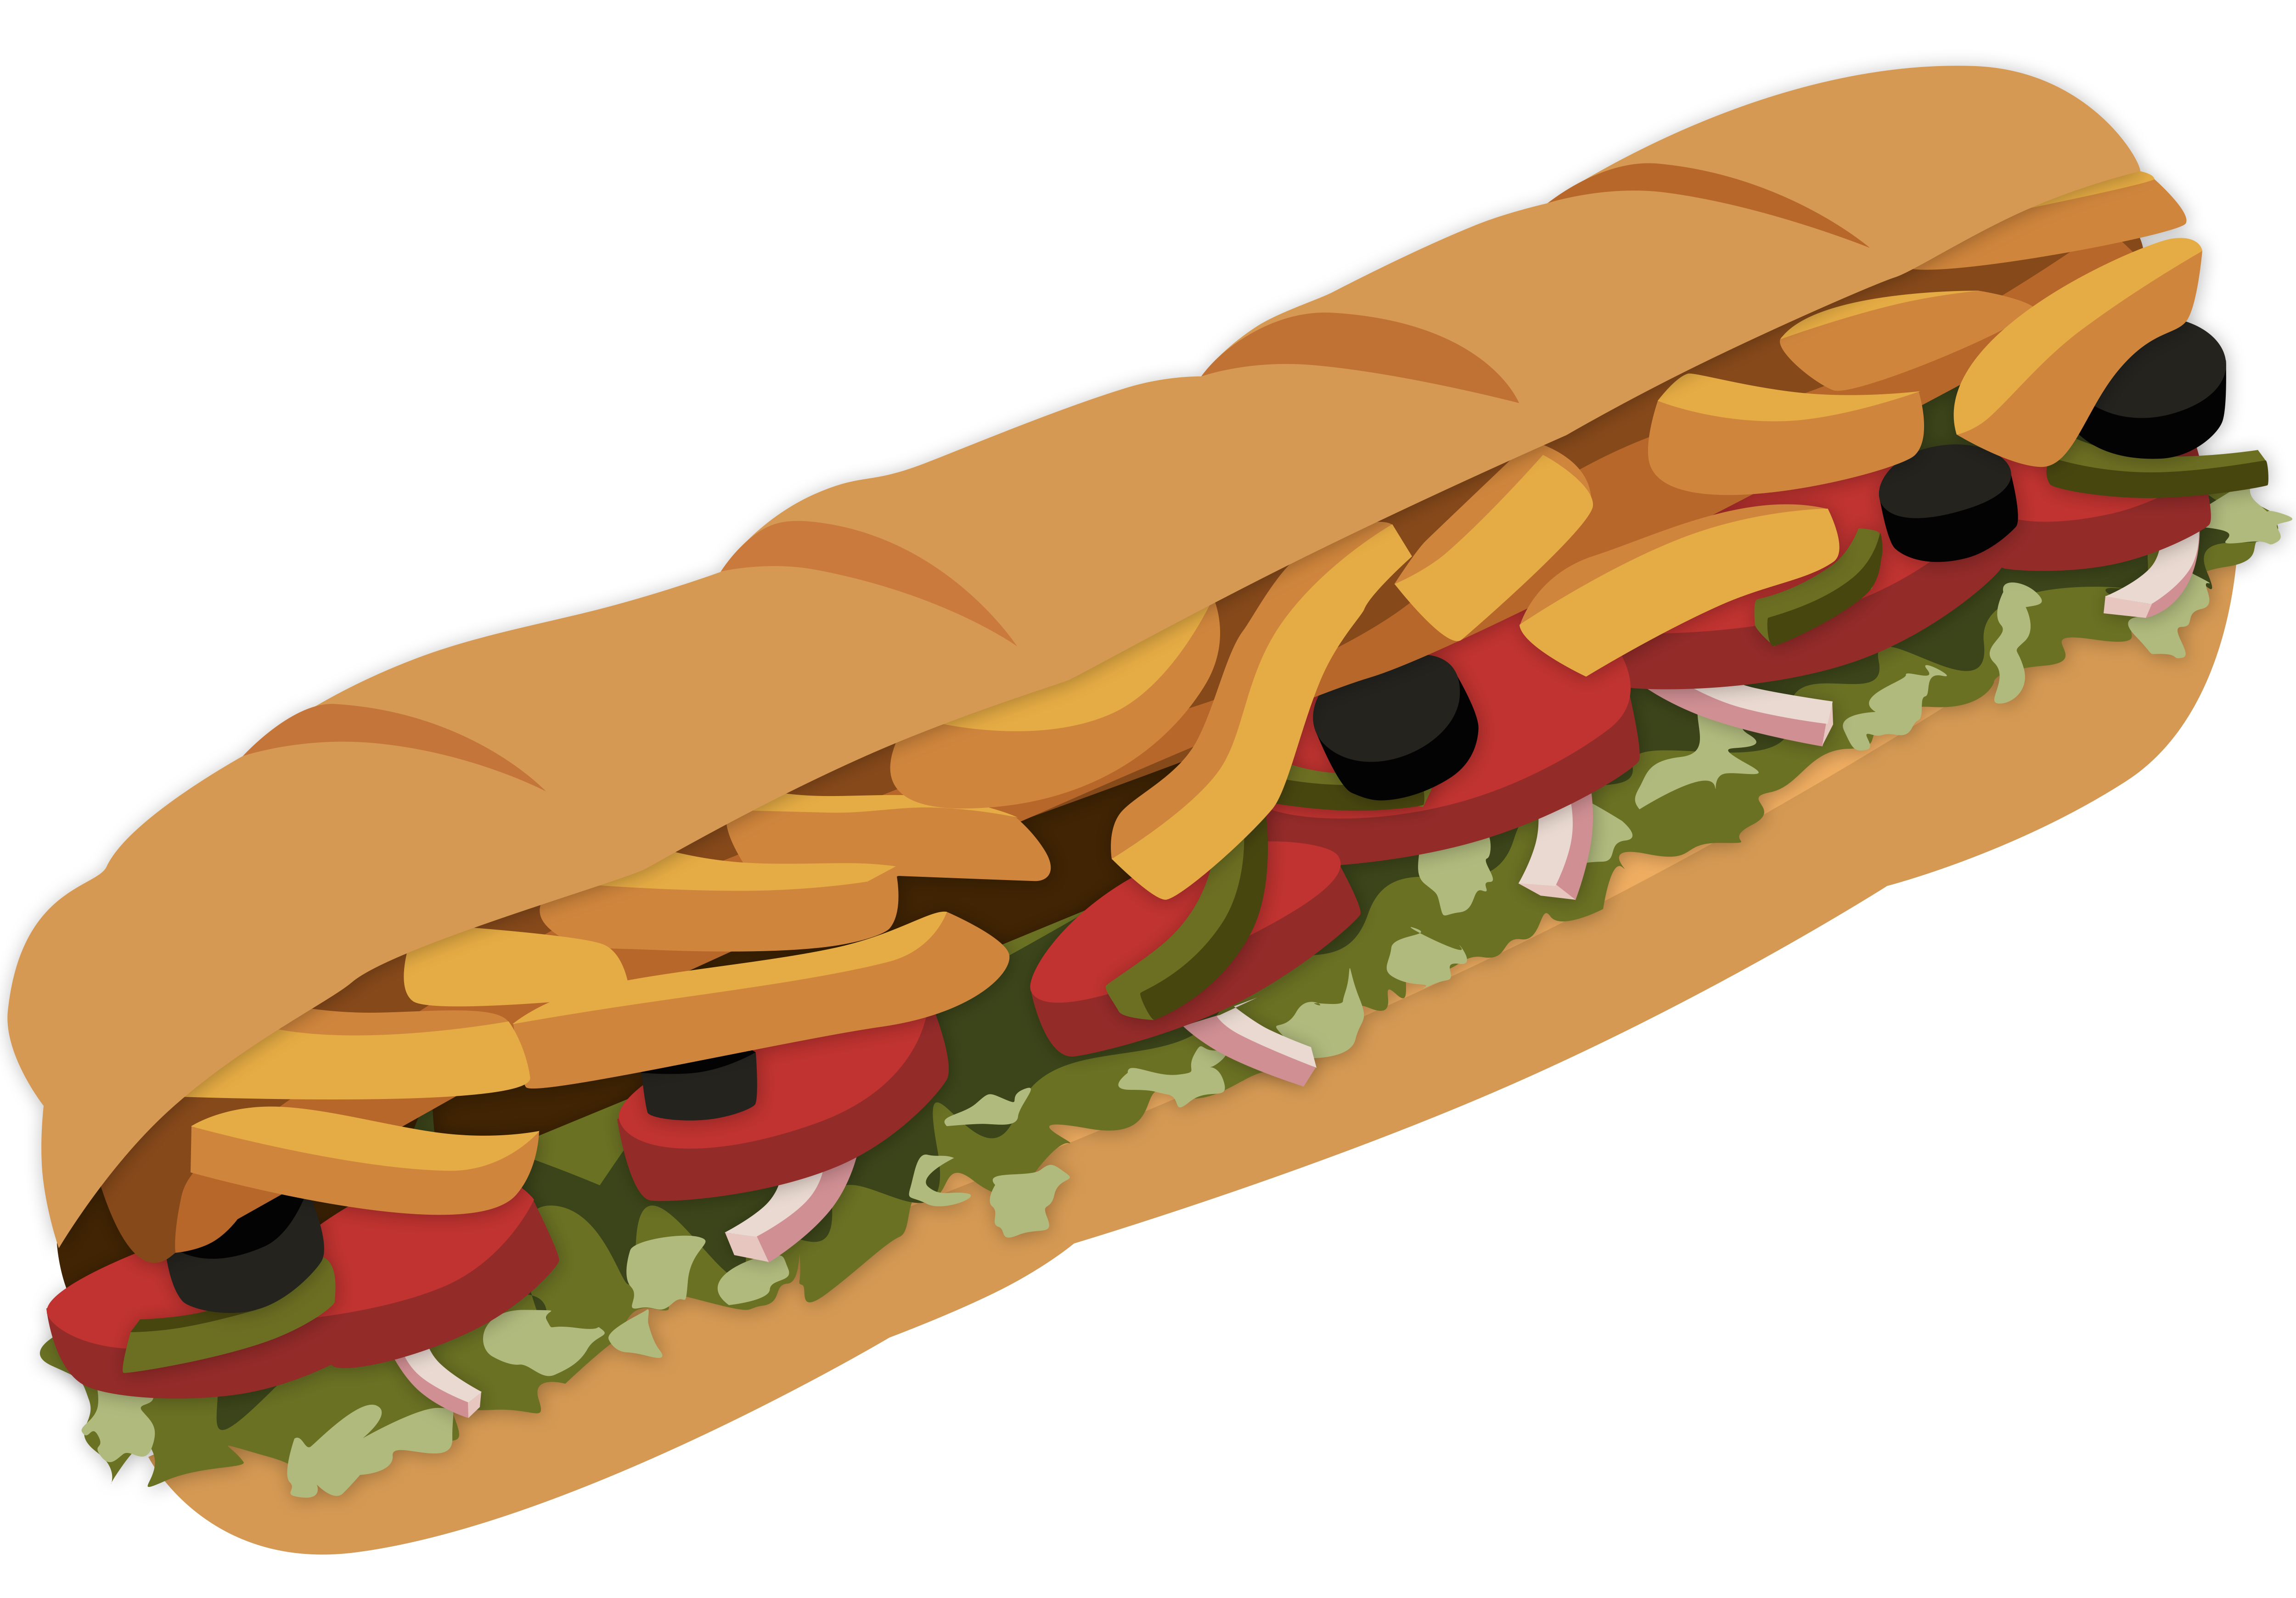 Bread Roll clipart sub sandwich Subway Sandwich DeviantArt MagicalMicrowaveOven Subway